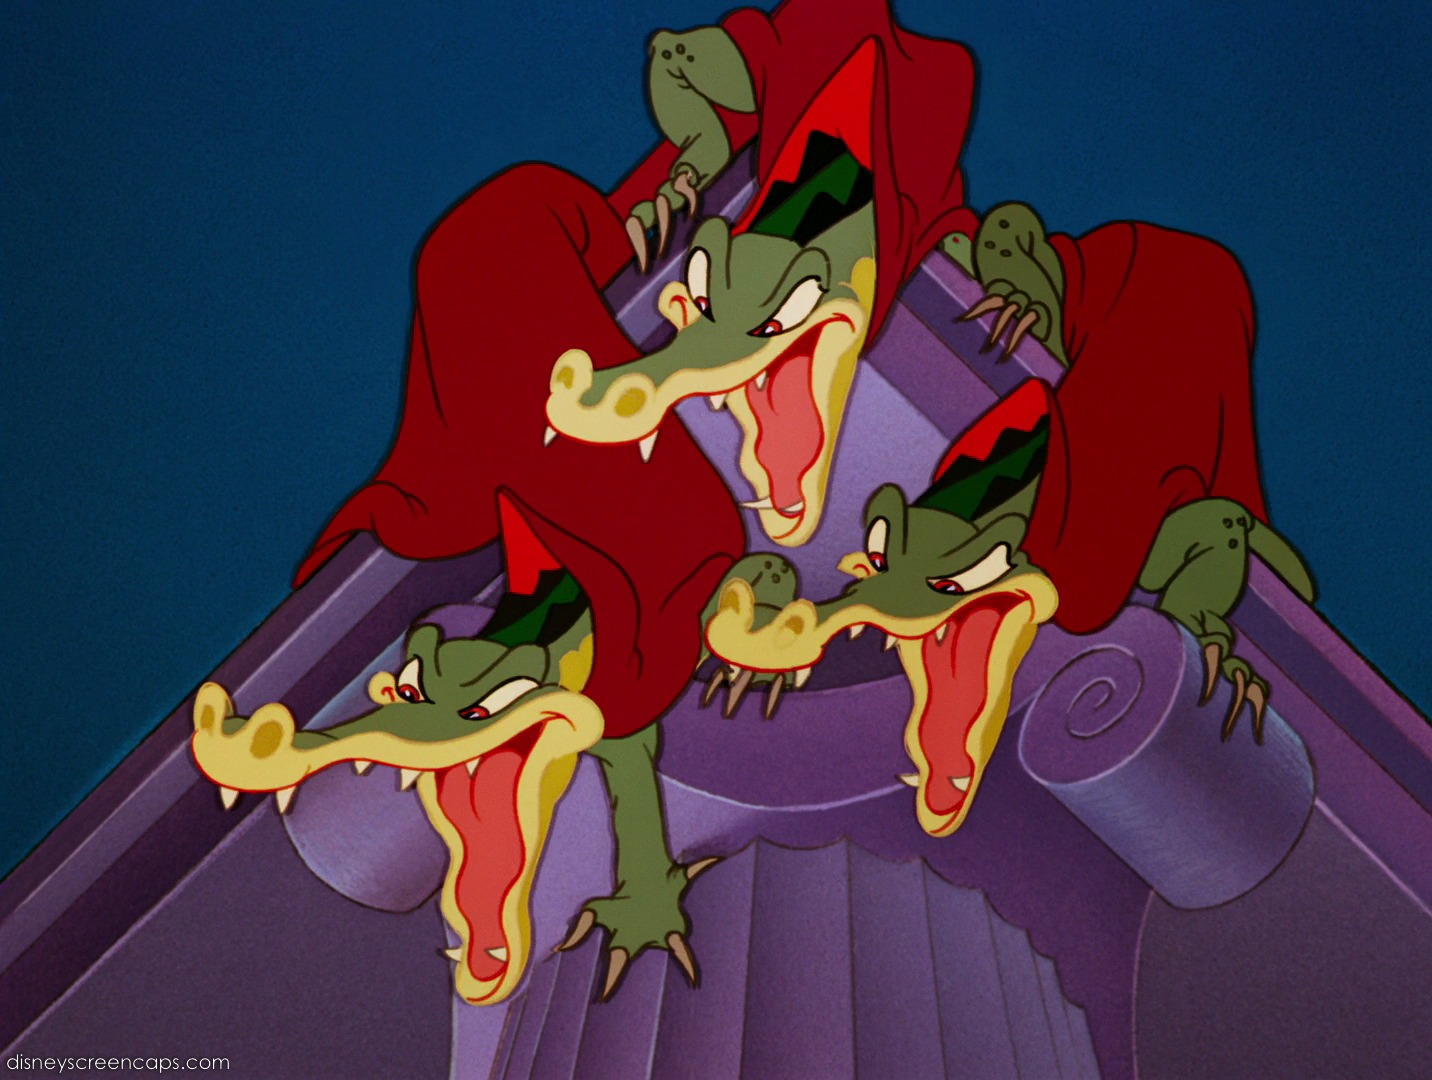 Alligators (Fantasia)